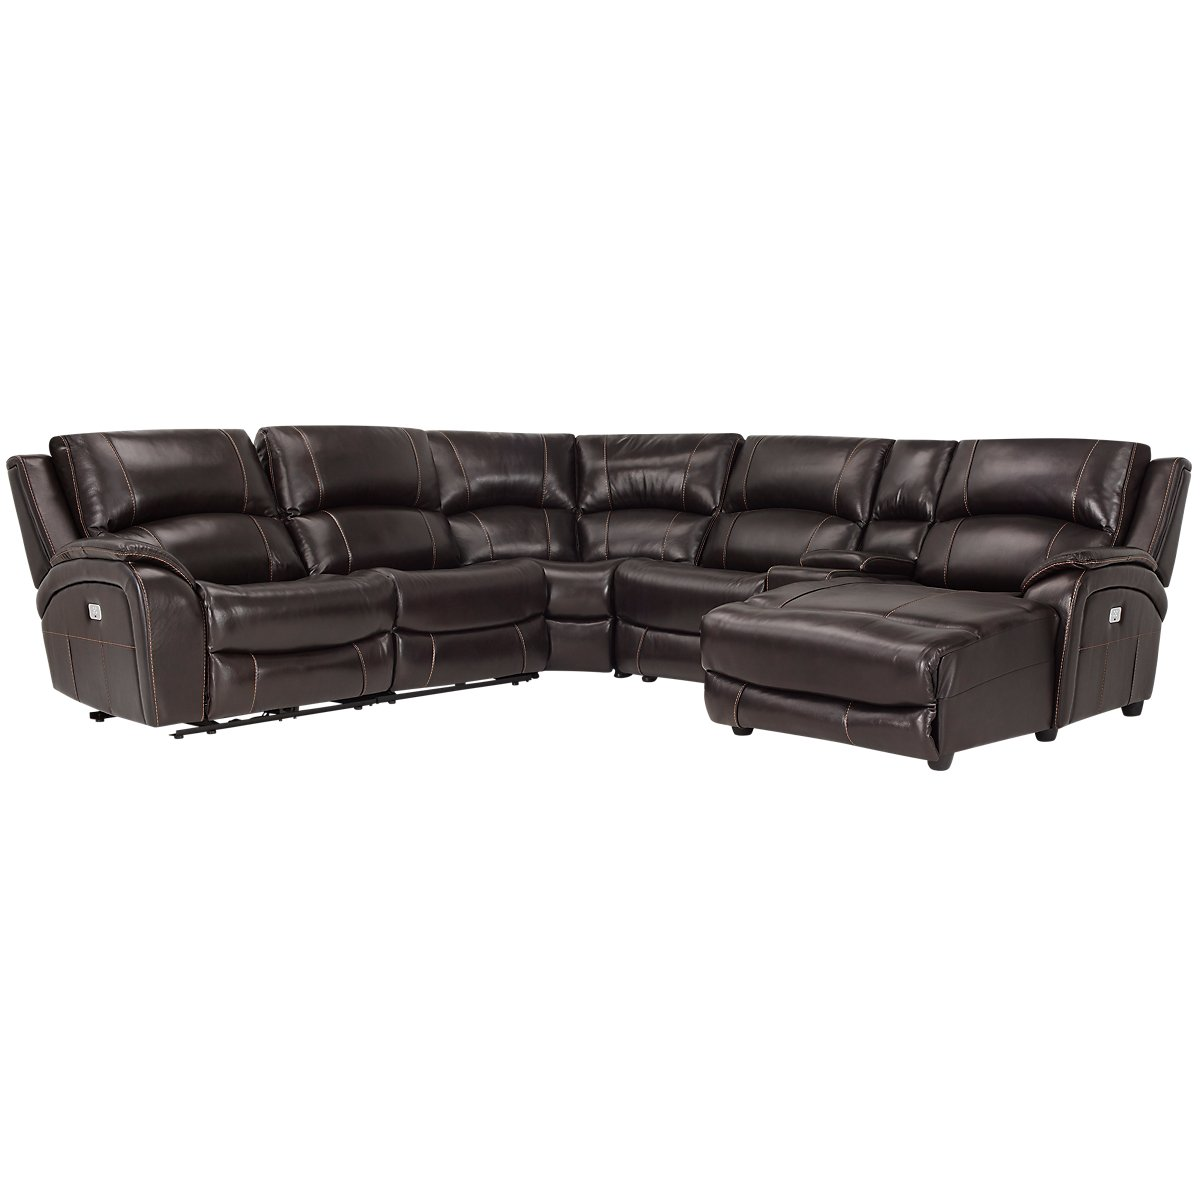 amazing chairs sectionals couch recliners l living size fabric full and leatherd best unique sectional leather chaise room furniture microfiber decorate combination modular sofas design ideas sofa reclining brown recliner with of